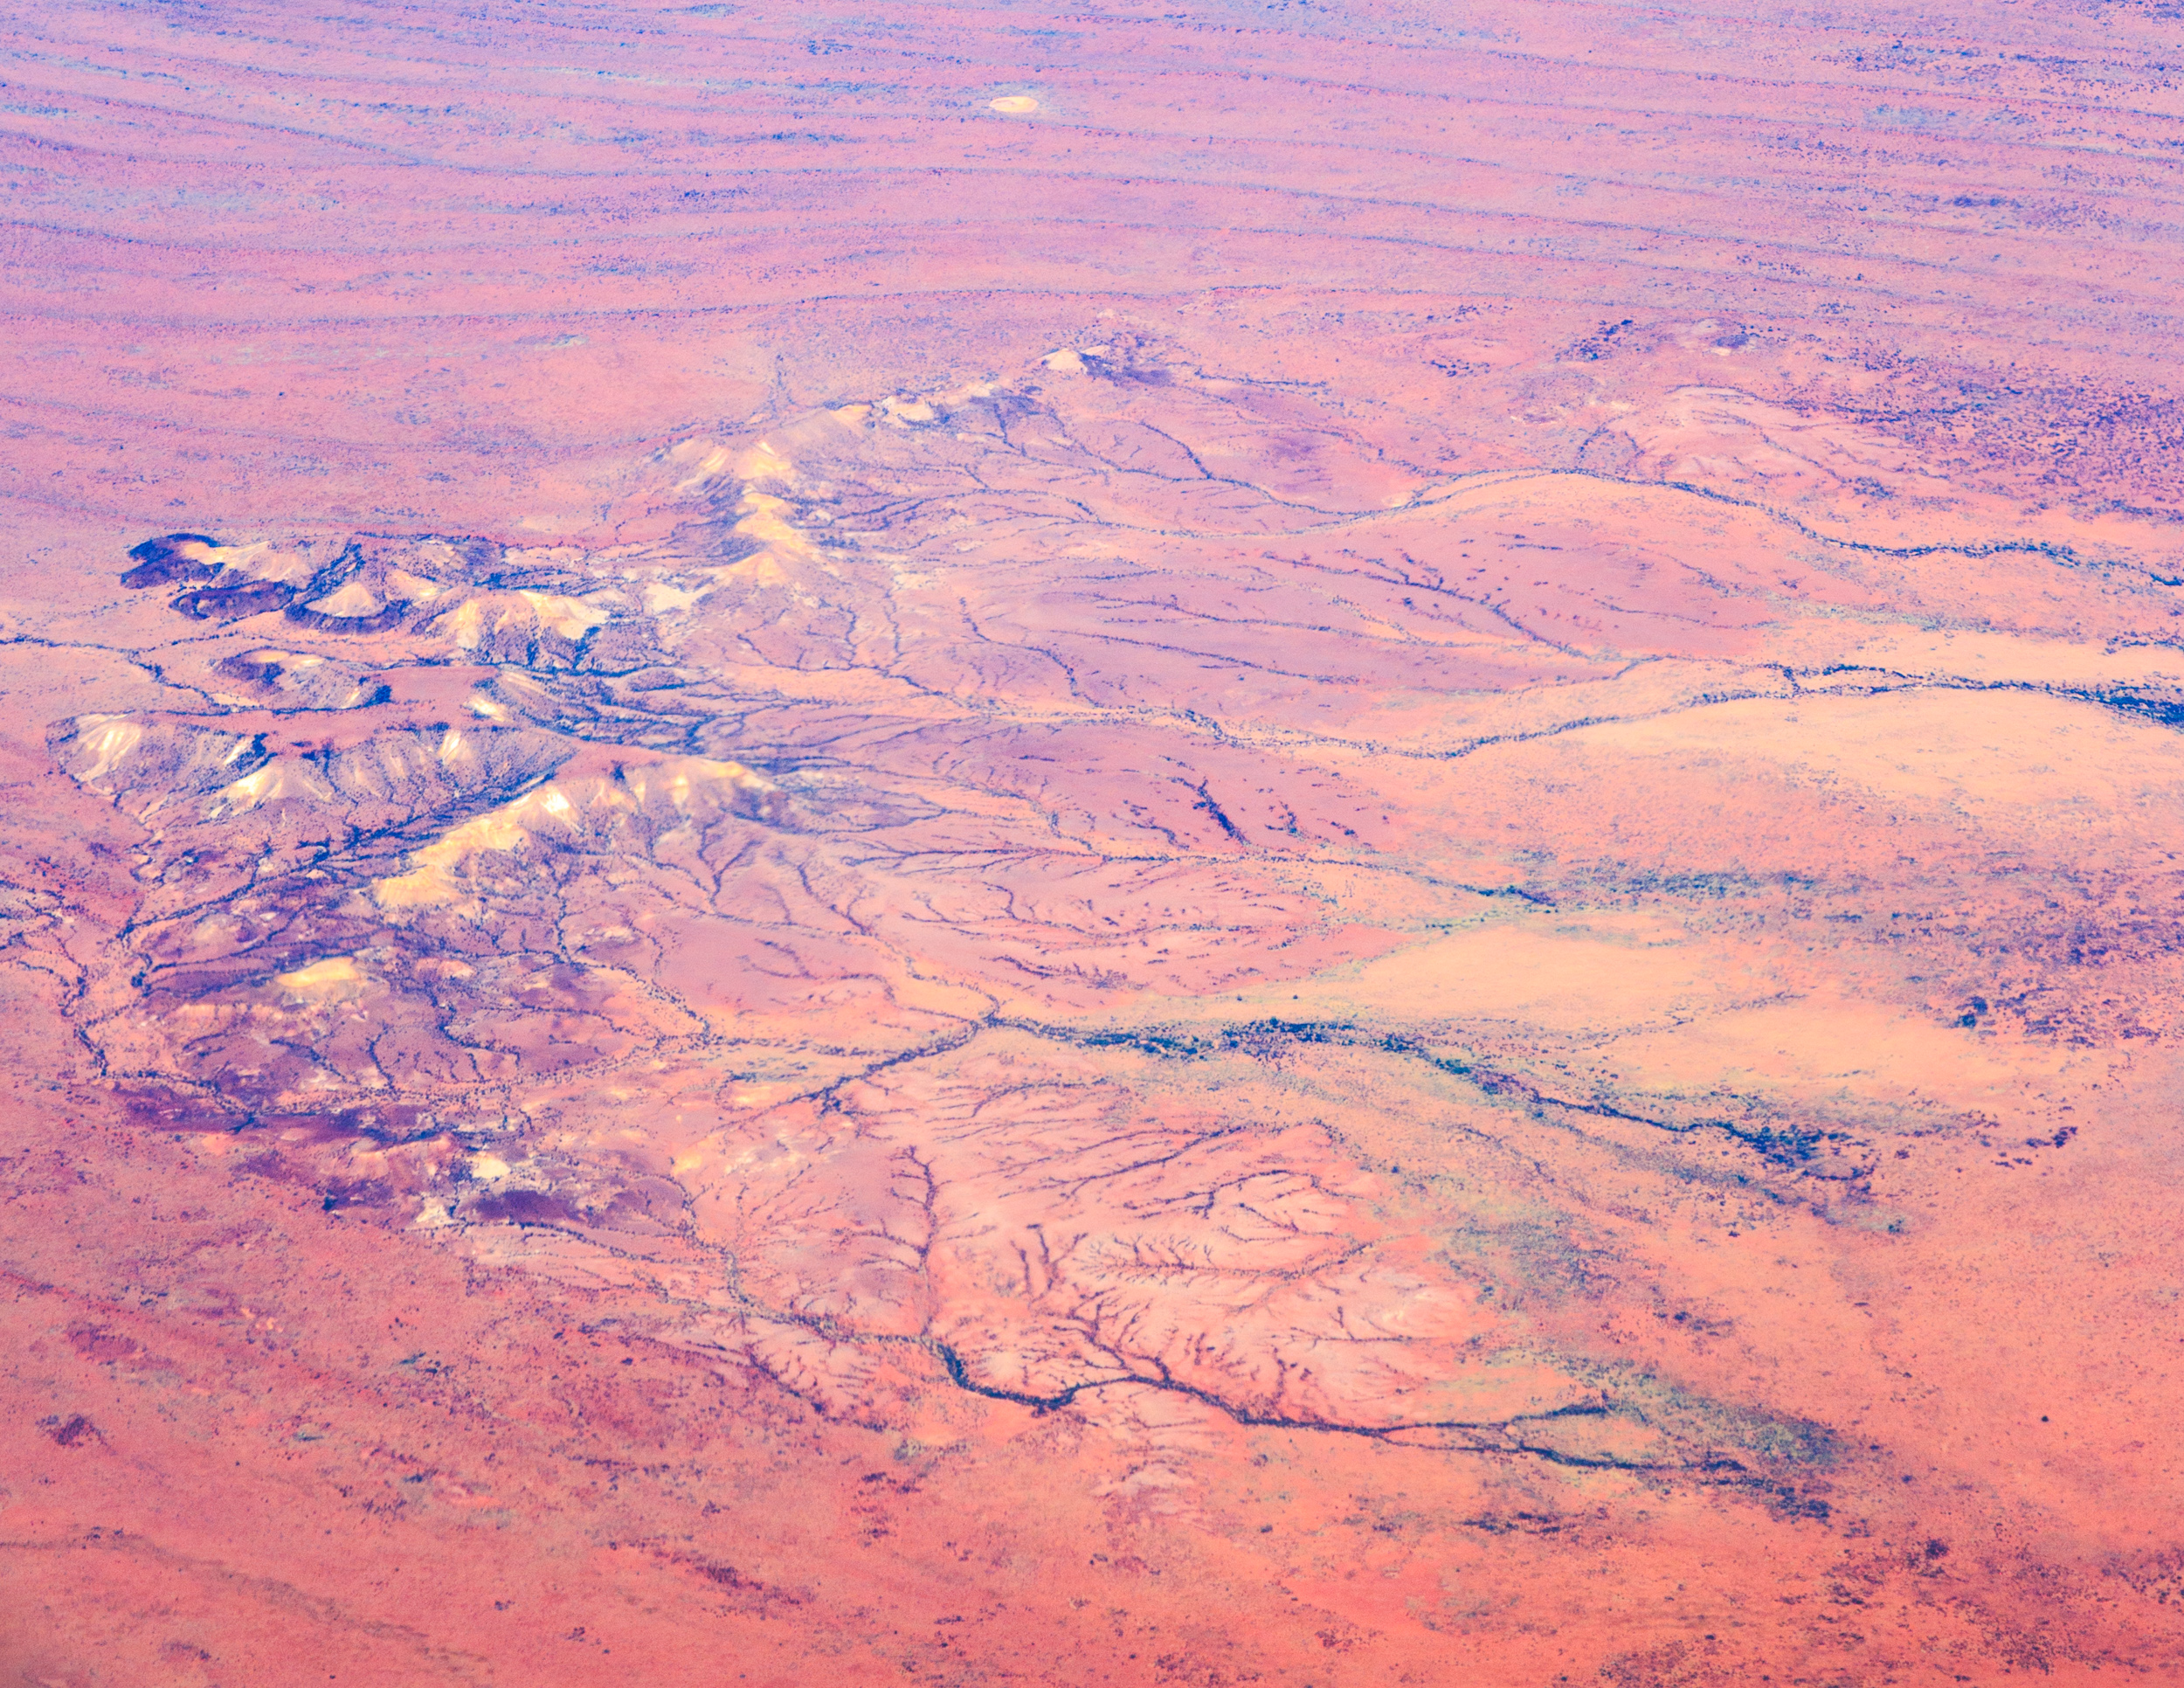 The view of the Simpson Desert from the plane looks like the surface of Mars!